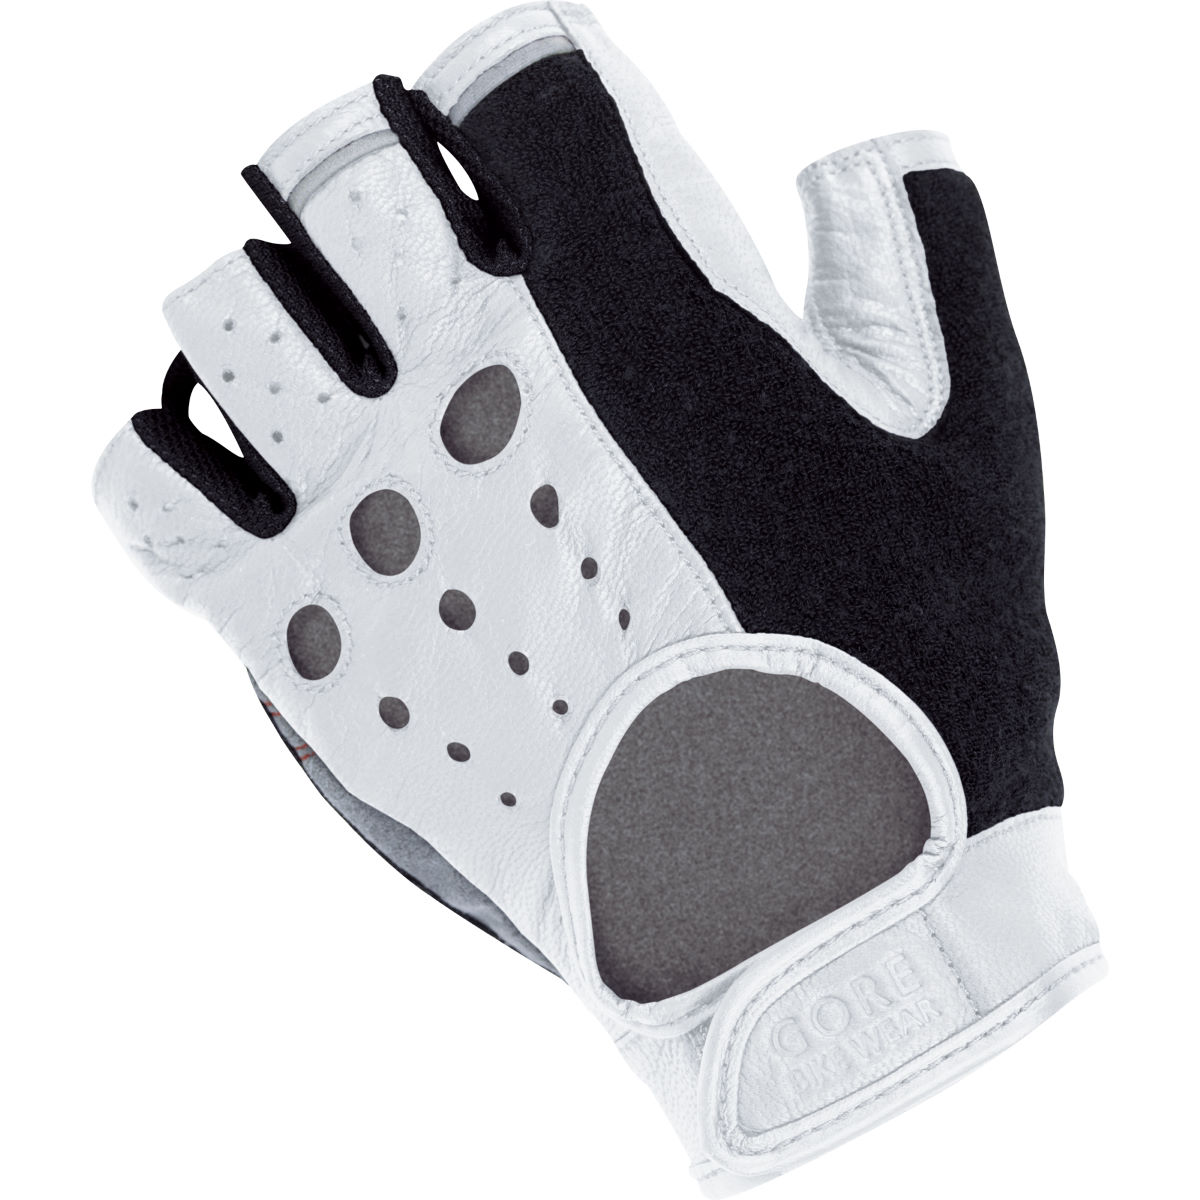 Gore Bike Wear Retro Tech Short Finger Cycling Glove